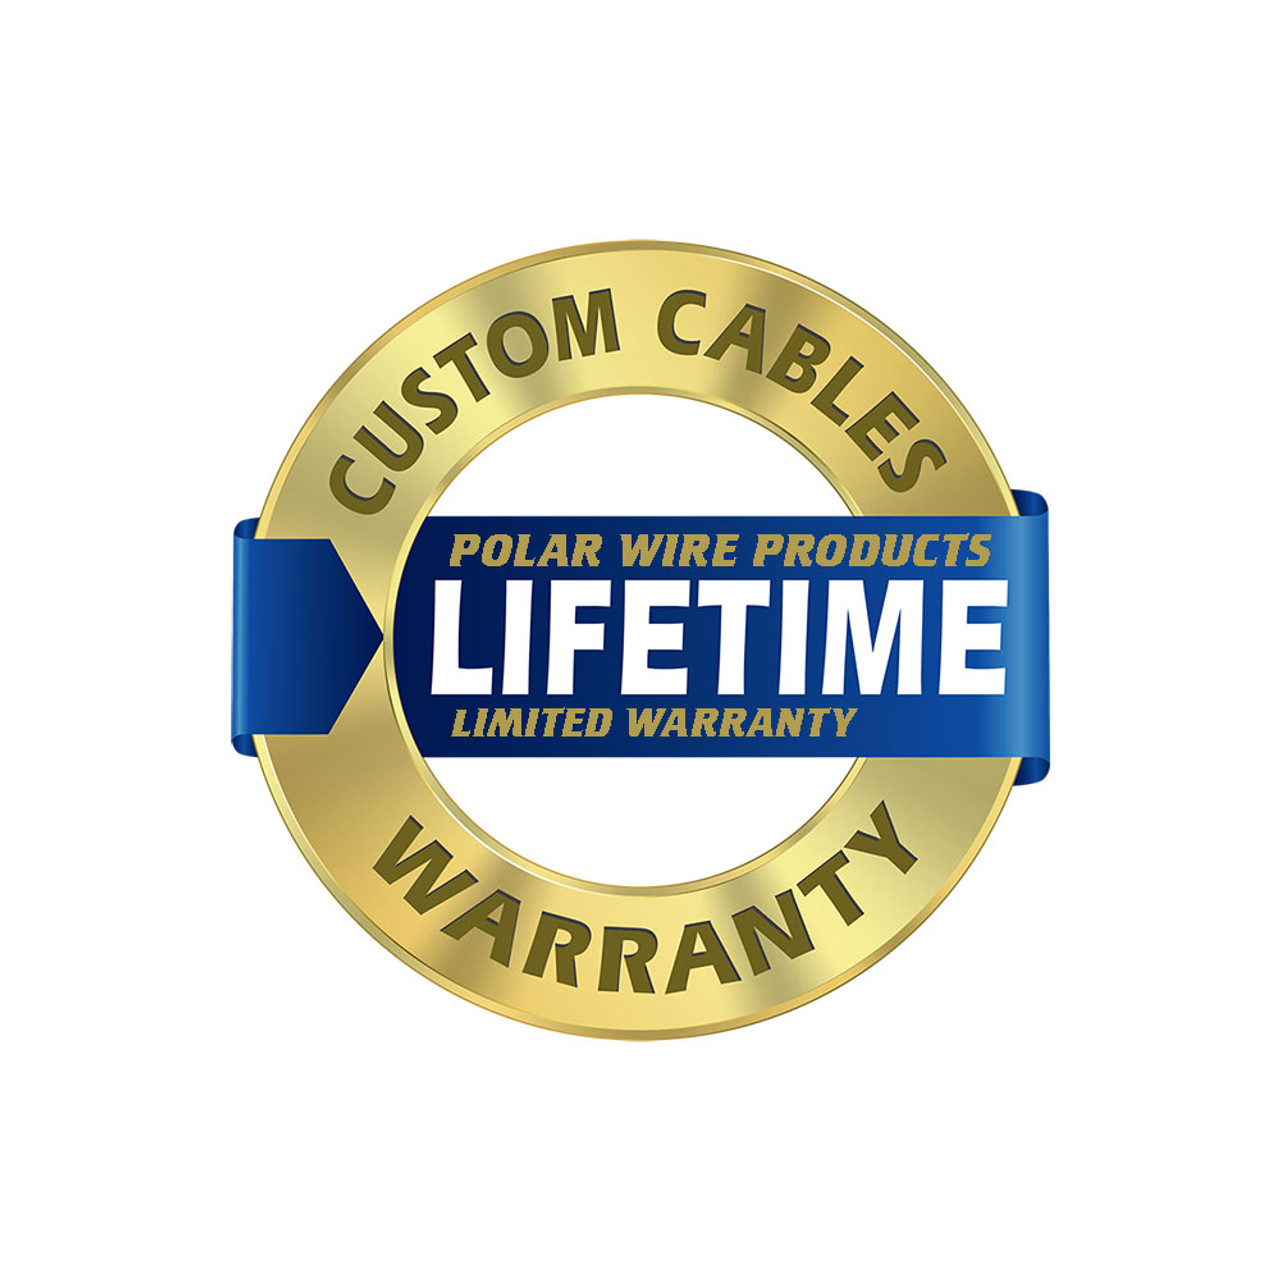 Polar Wire Arctic Superflex Blue Jumper Cables are covered by our LIFETIME limited warranty!